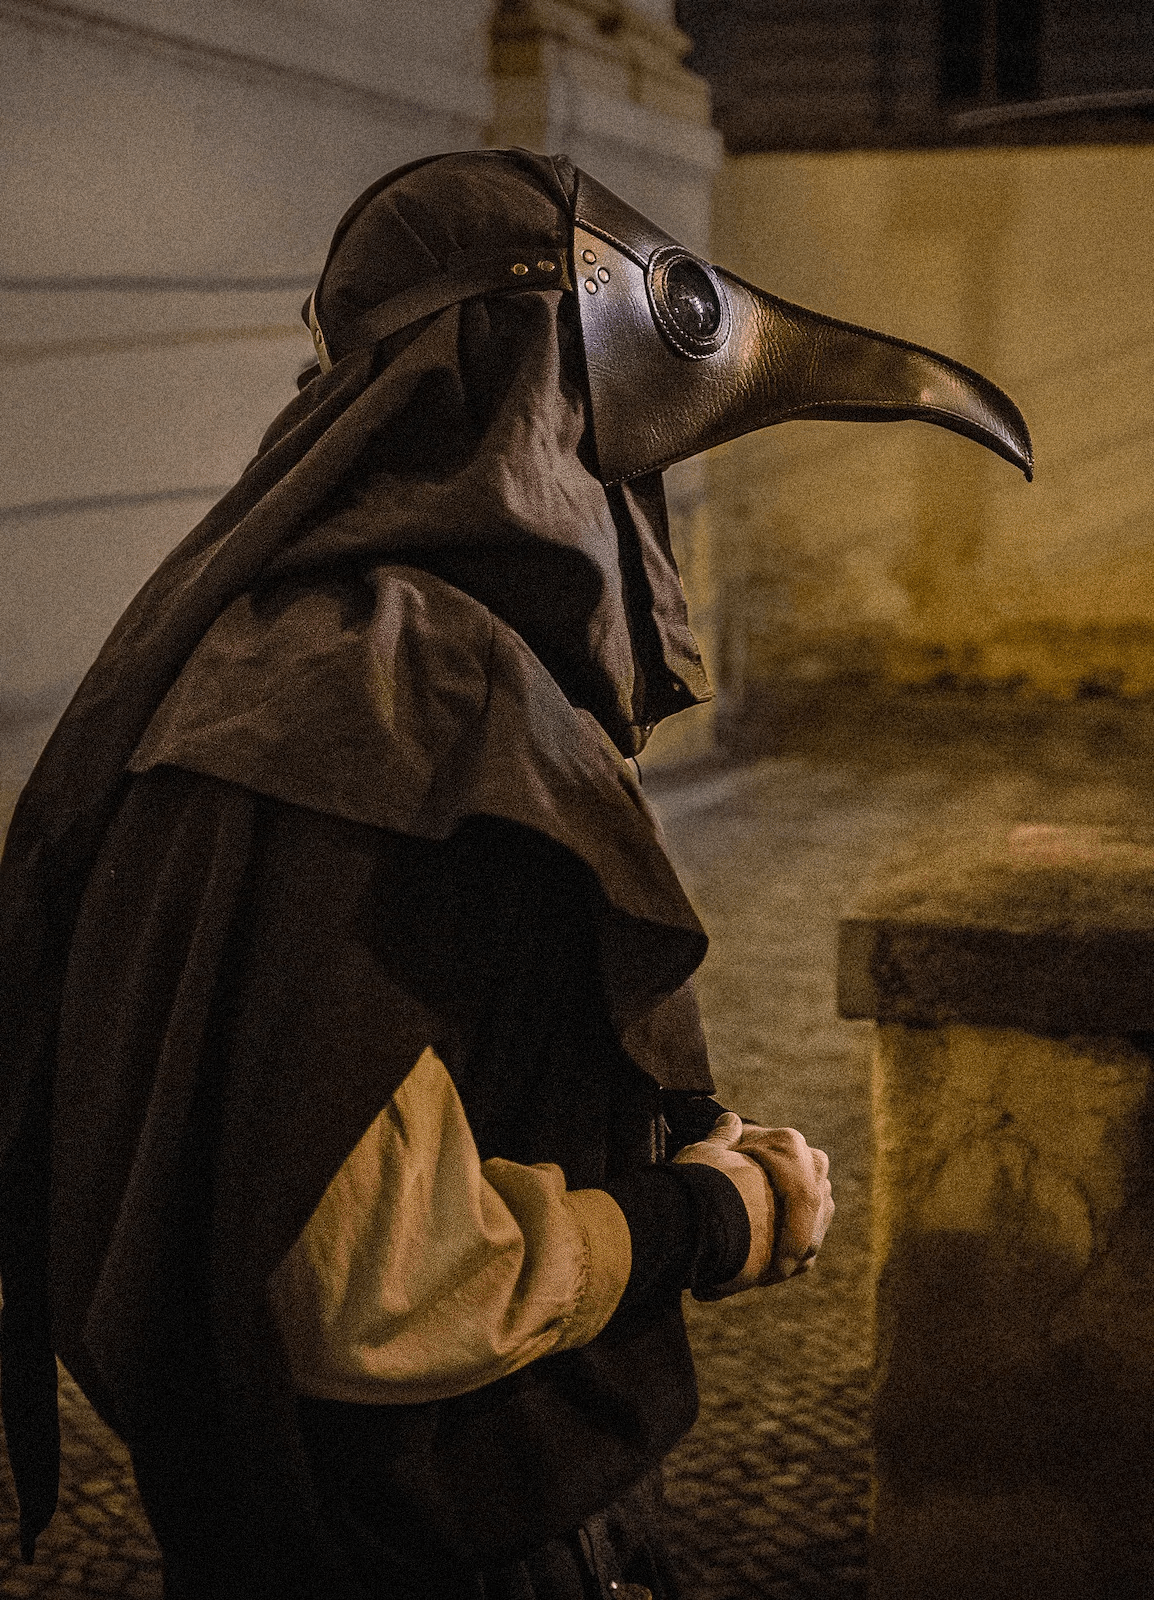 plague doctor in prague cultural activity